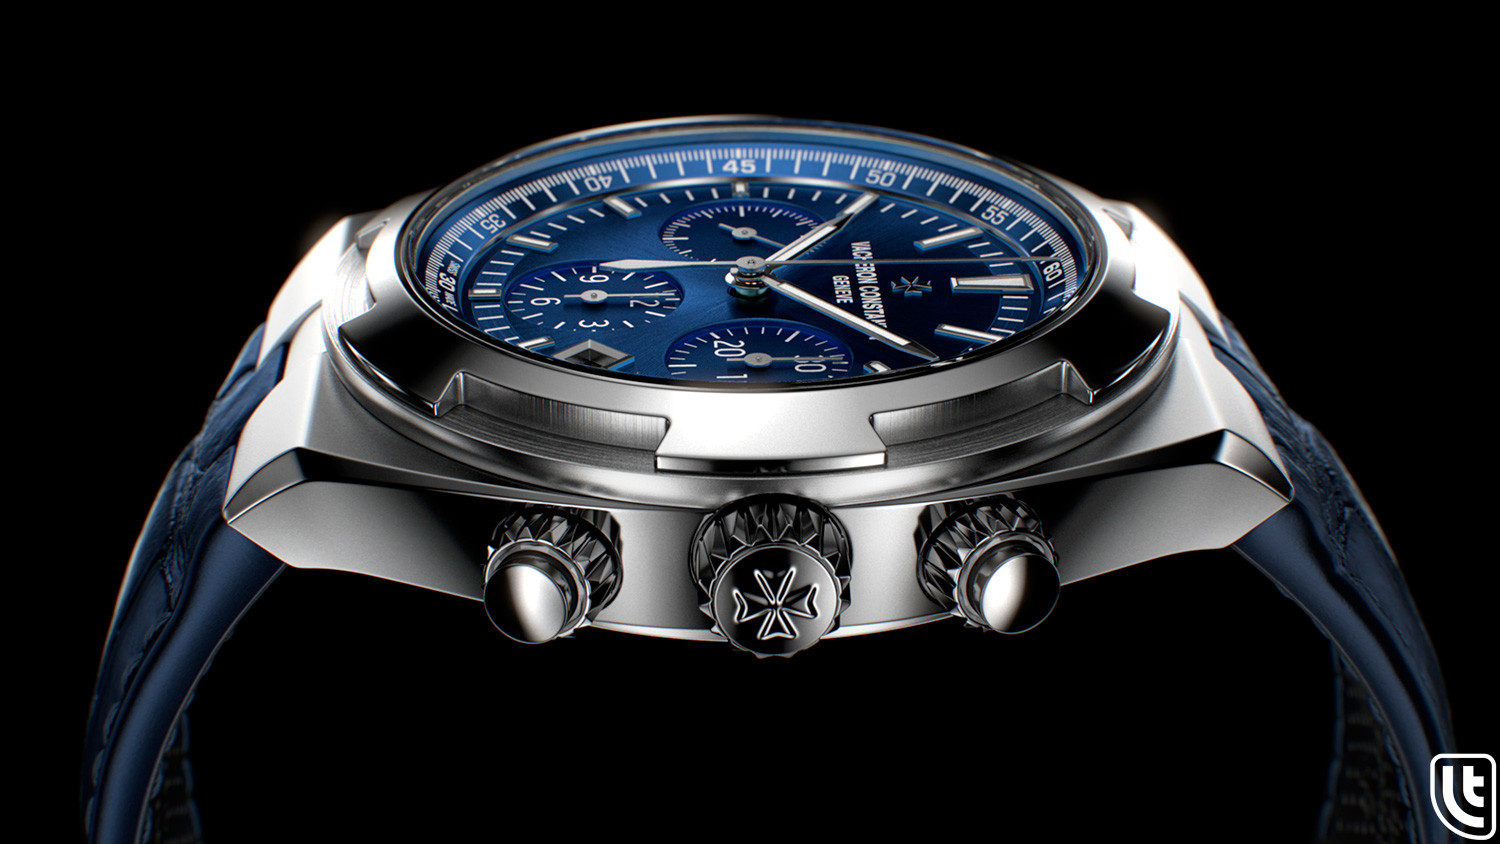 David letondor vacheron david letondor v9